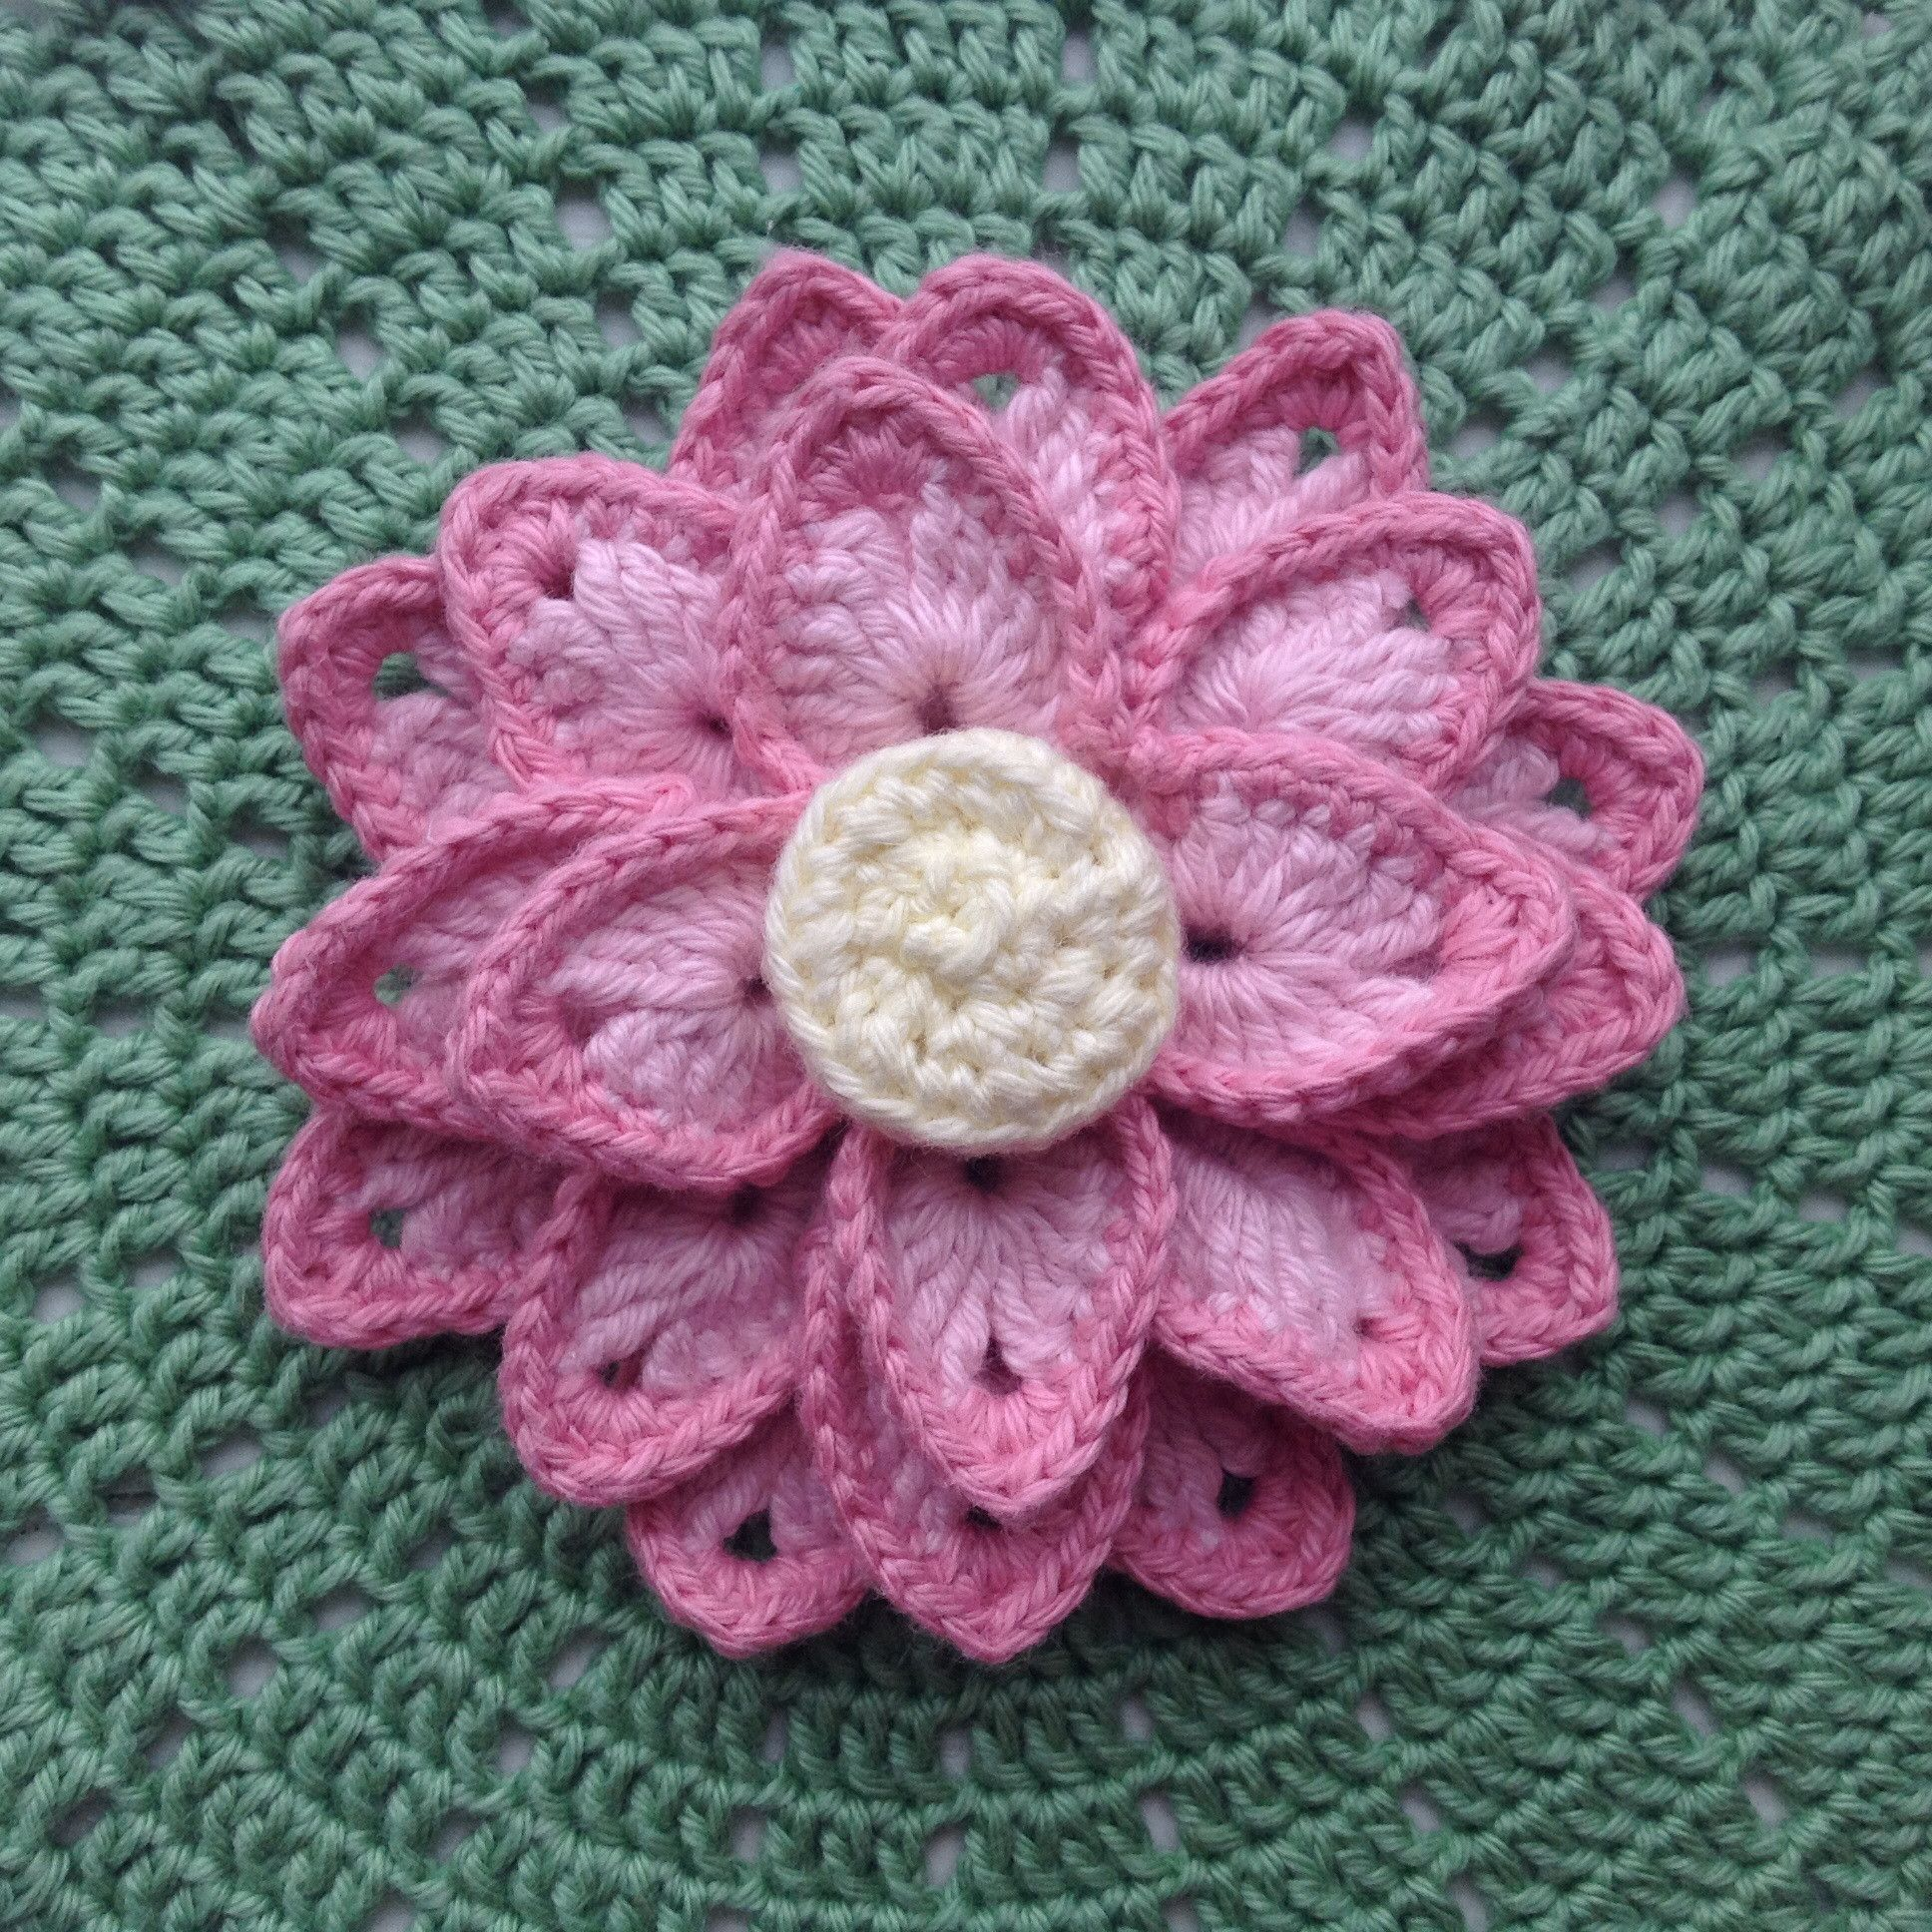 Suvis Crochet Lotus Flower Free Crochet Pattern With Pictures And